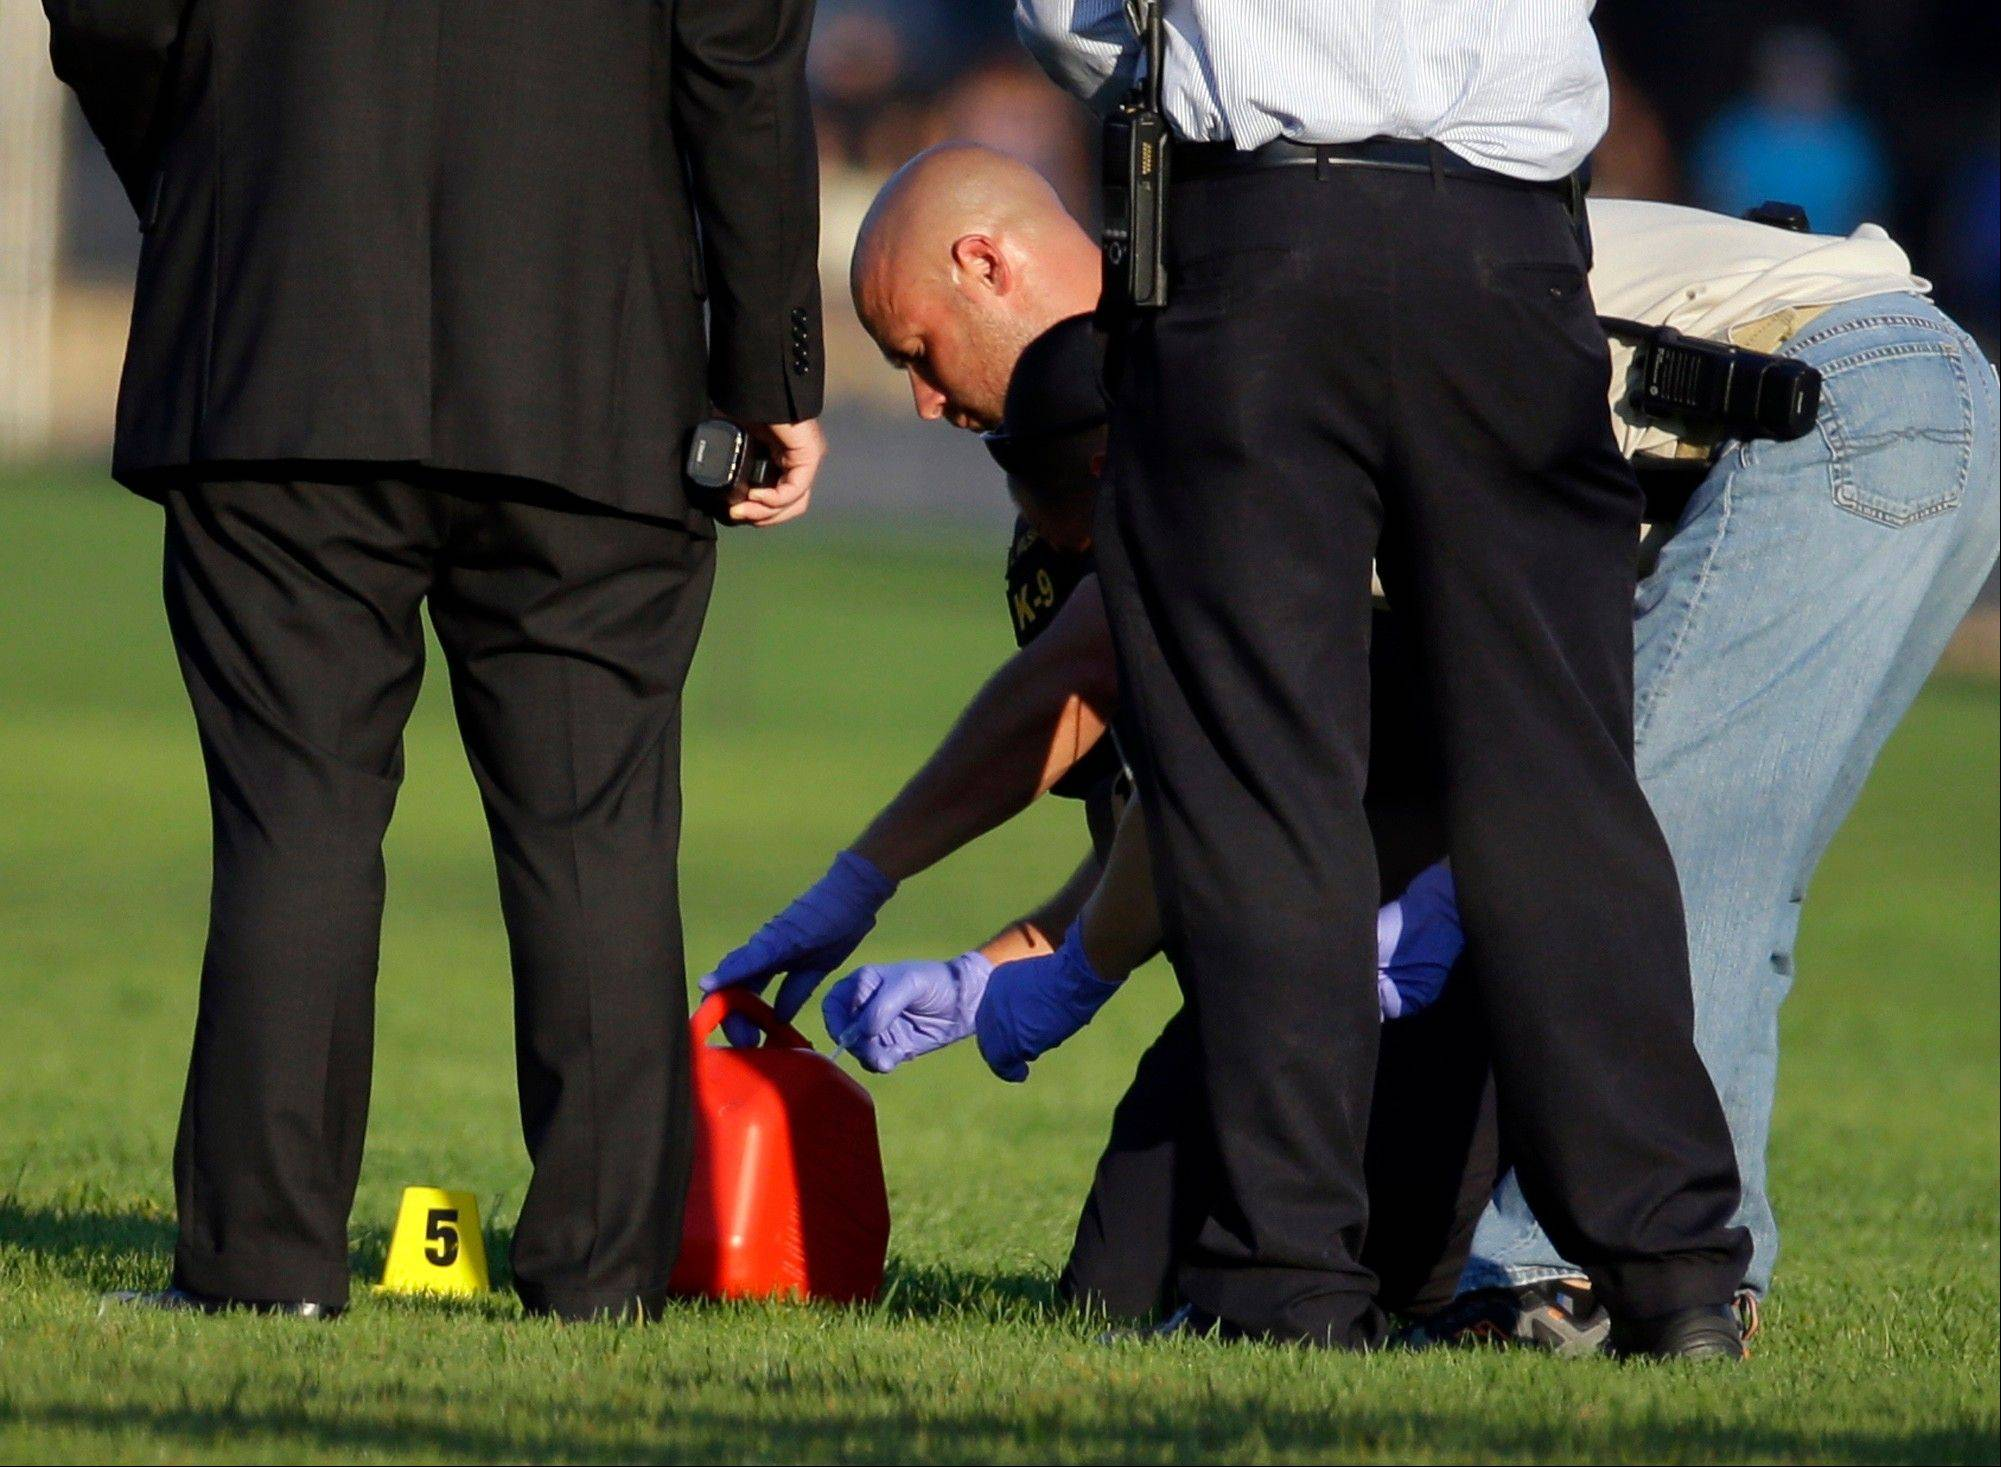 Police investigators take a sample from a red container near where officials said a man set himself on fire, on the National Mall, Friday, Oct. 4, 2013, in Washington.